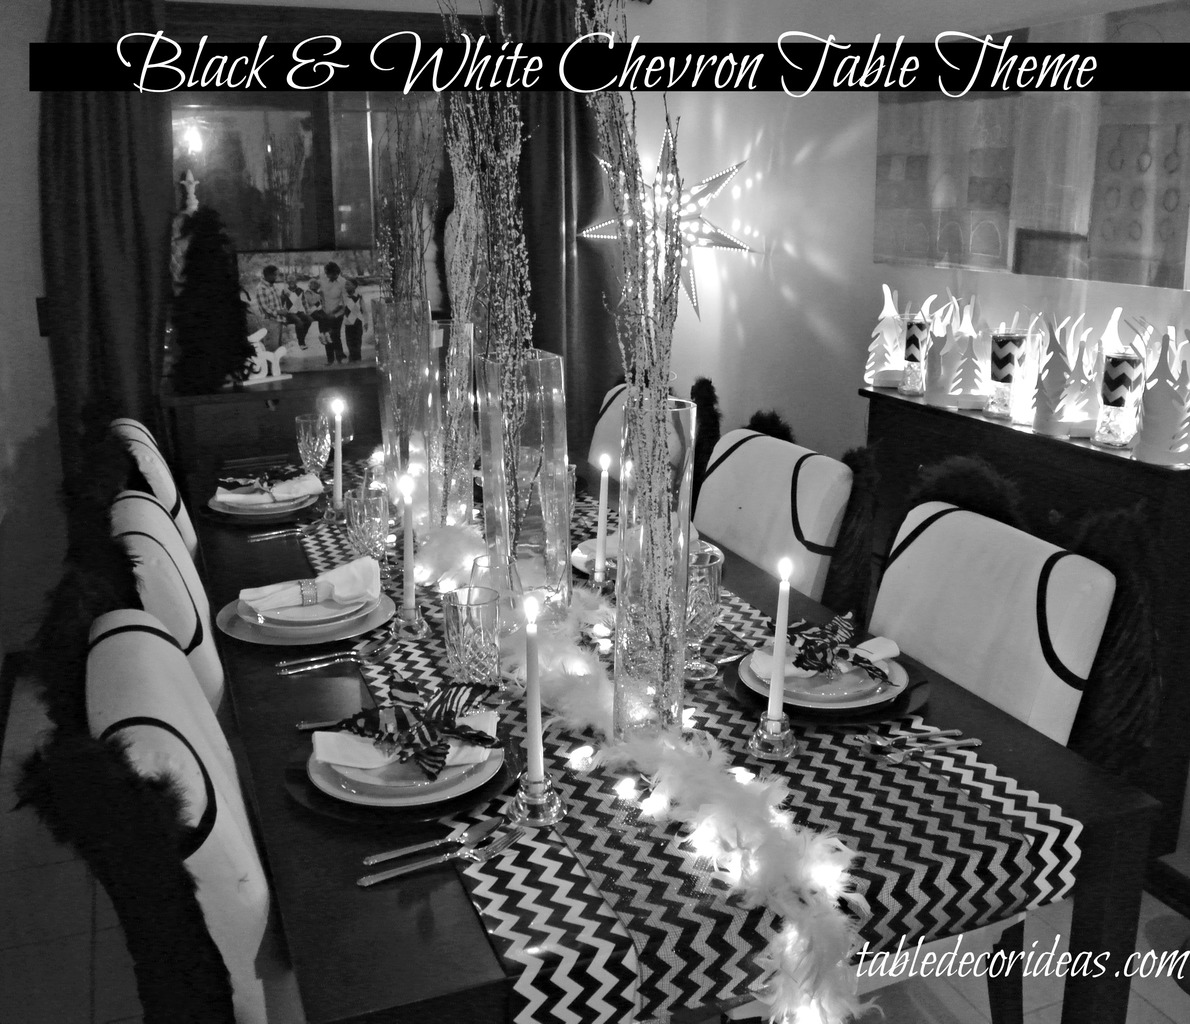 Table Decor Idea Chevron Black amp White Christmas Theme